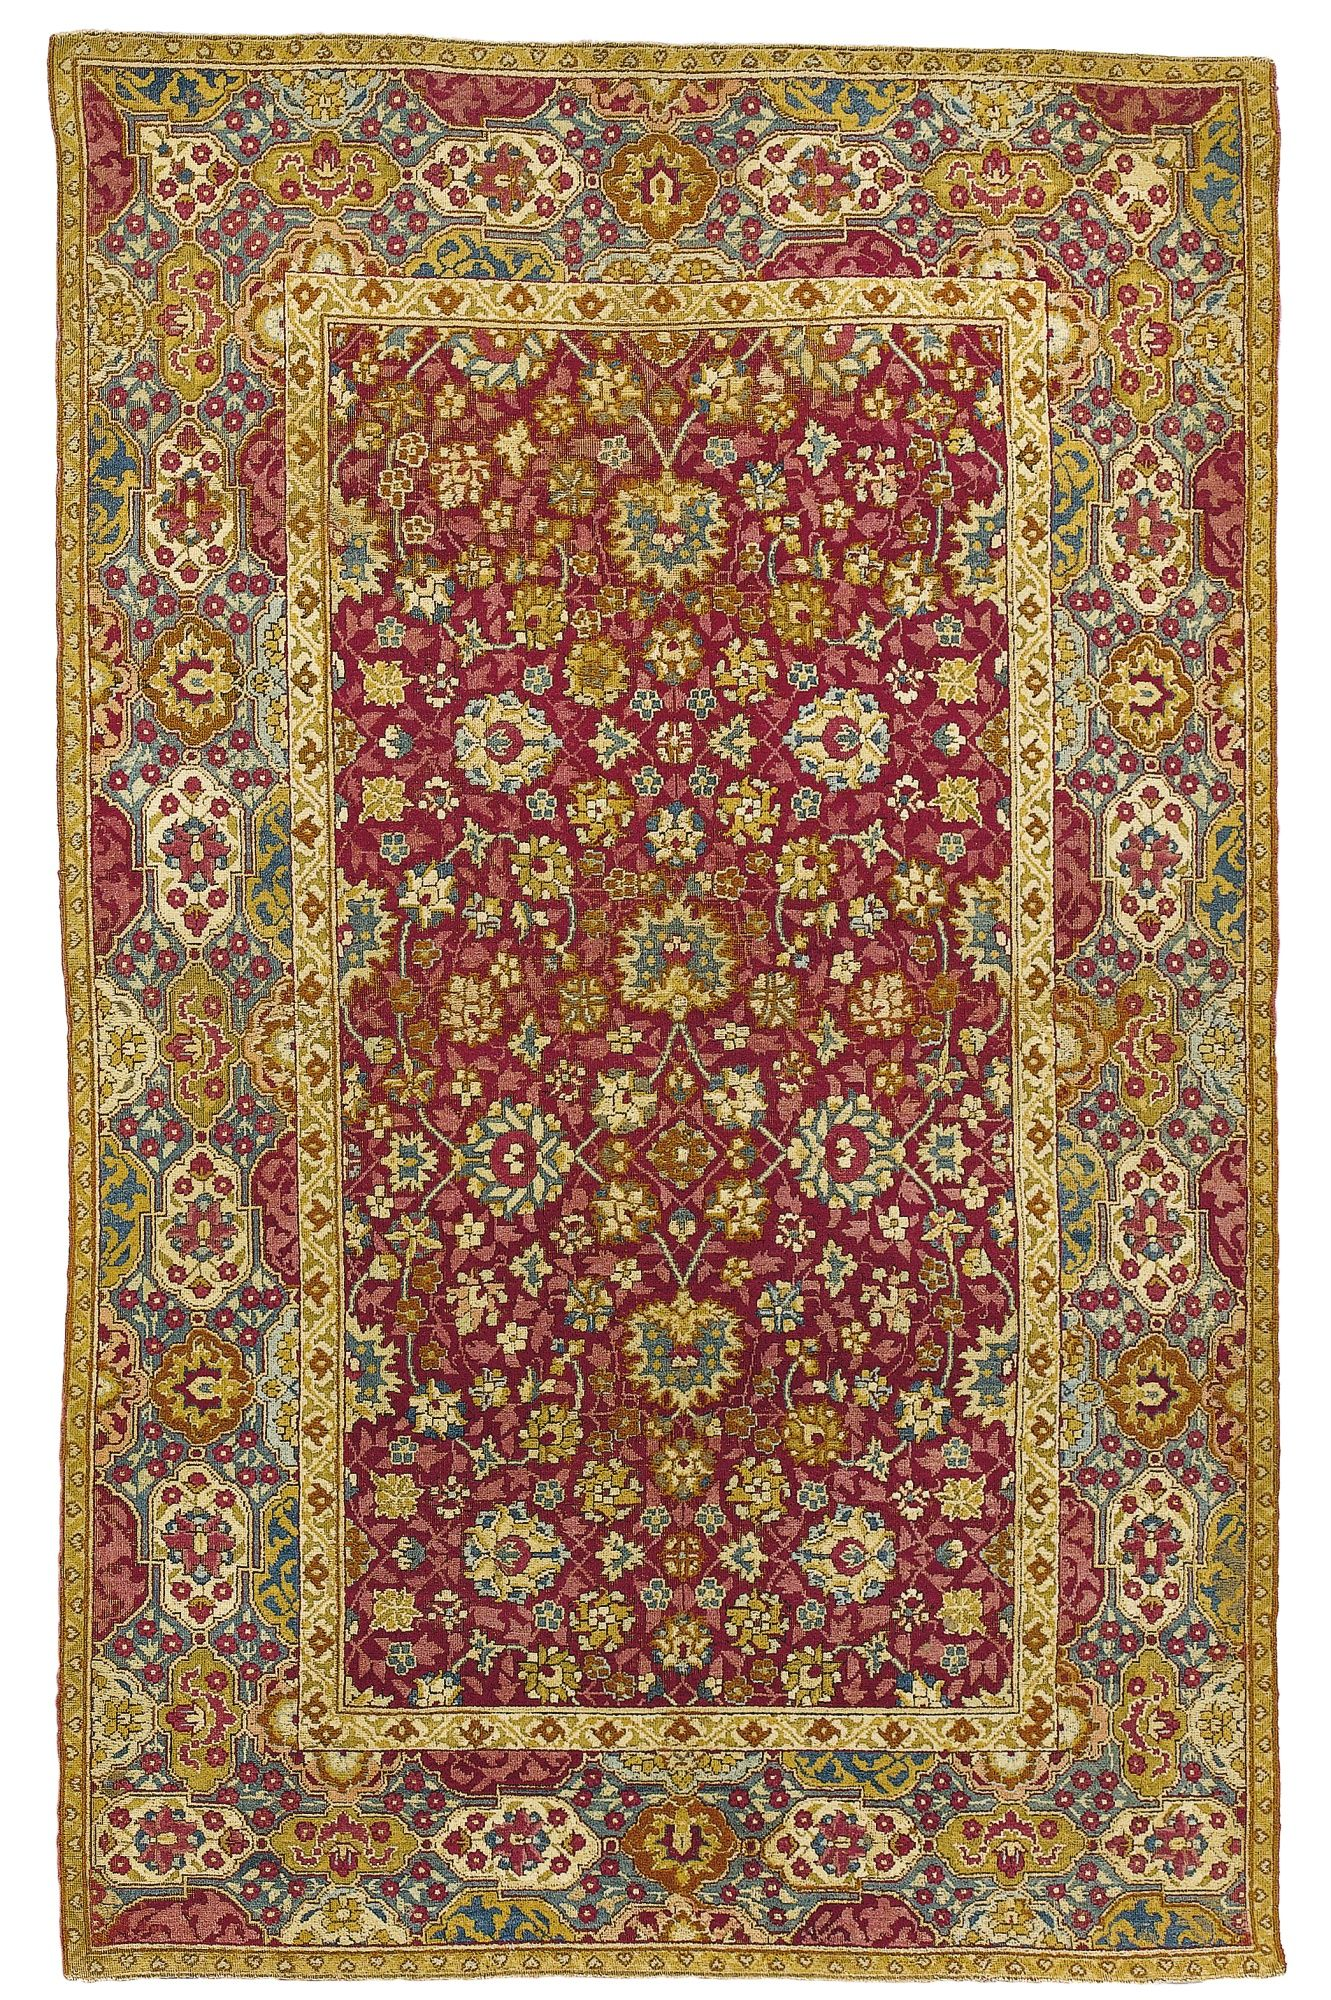 A Mughal Rug Probably La North India Lot Sotheby S